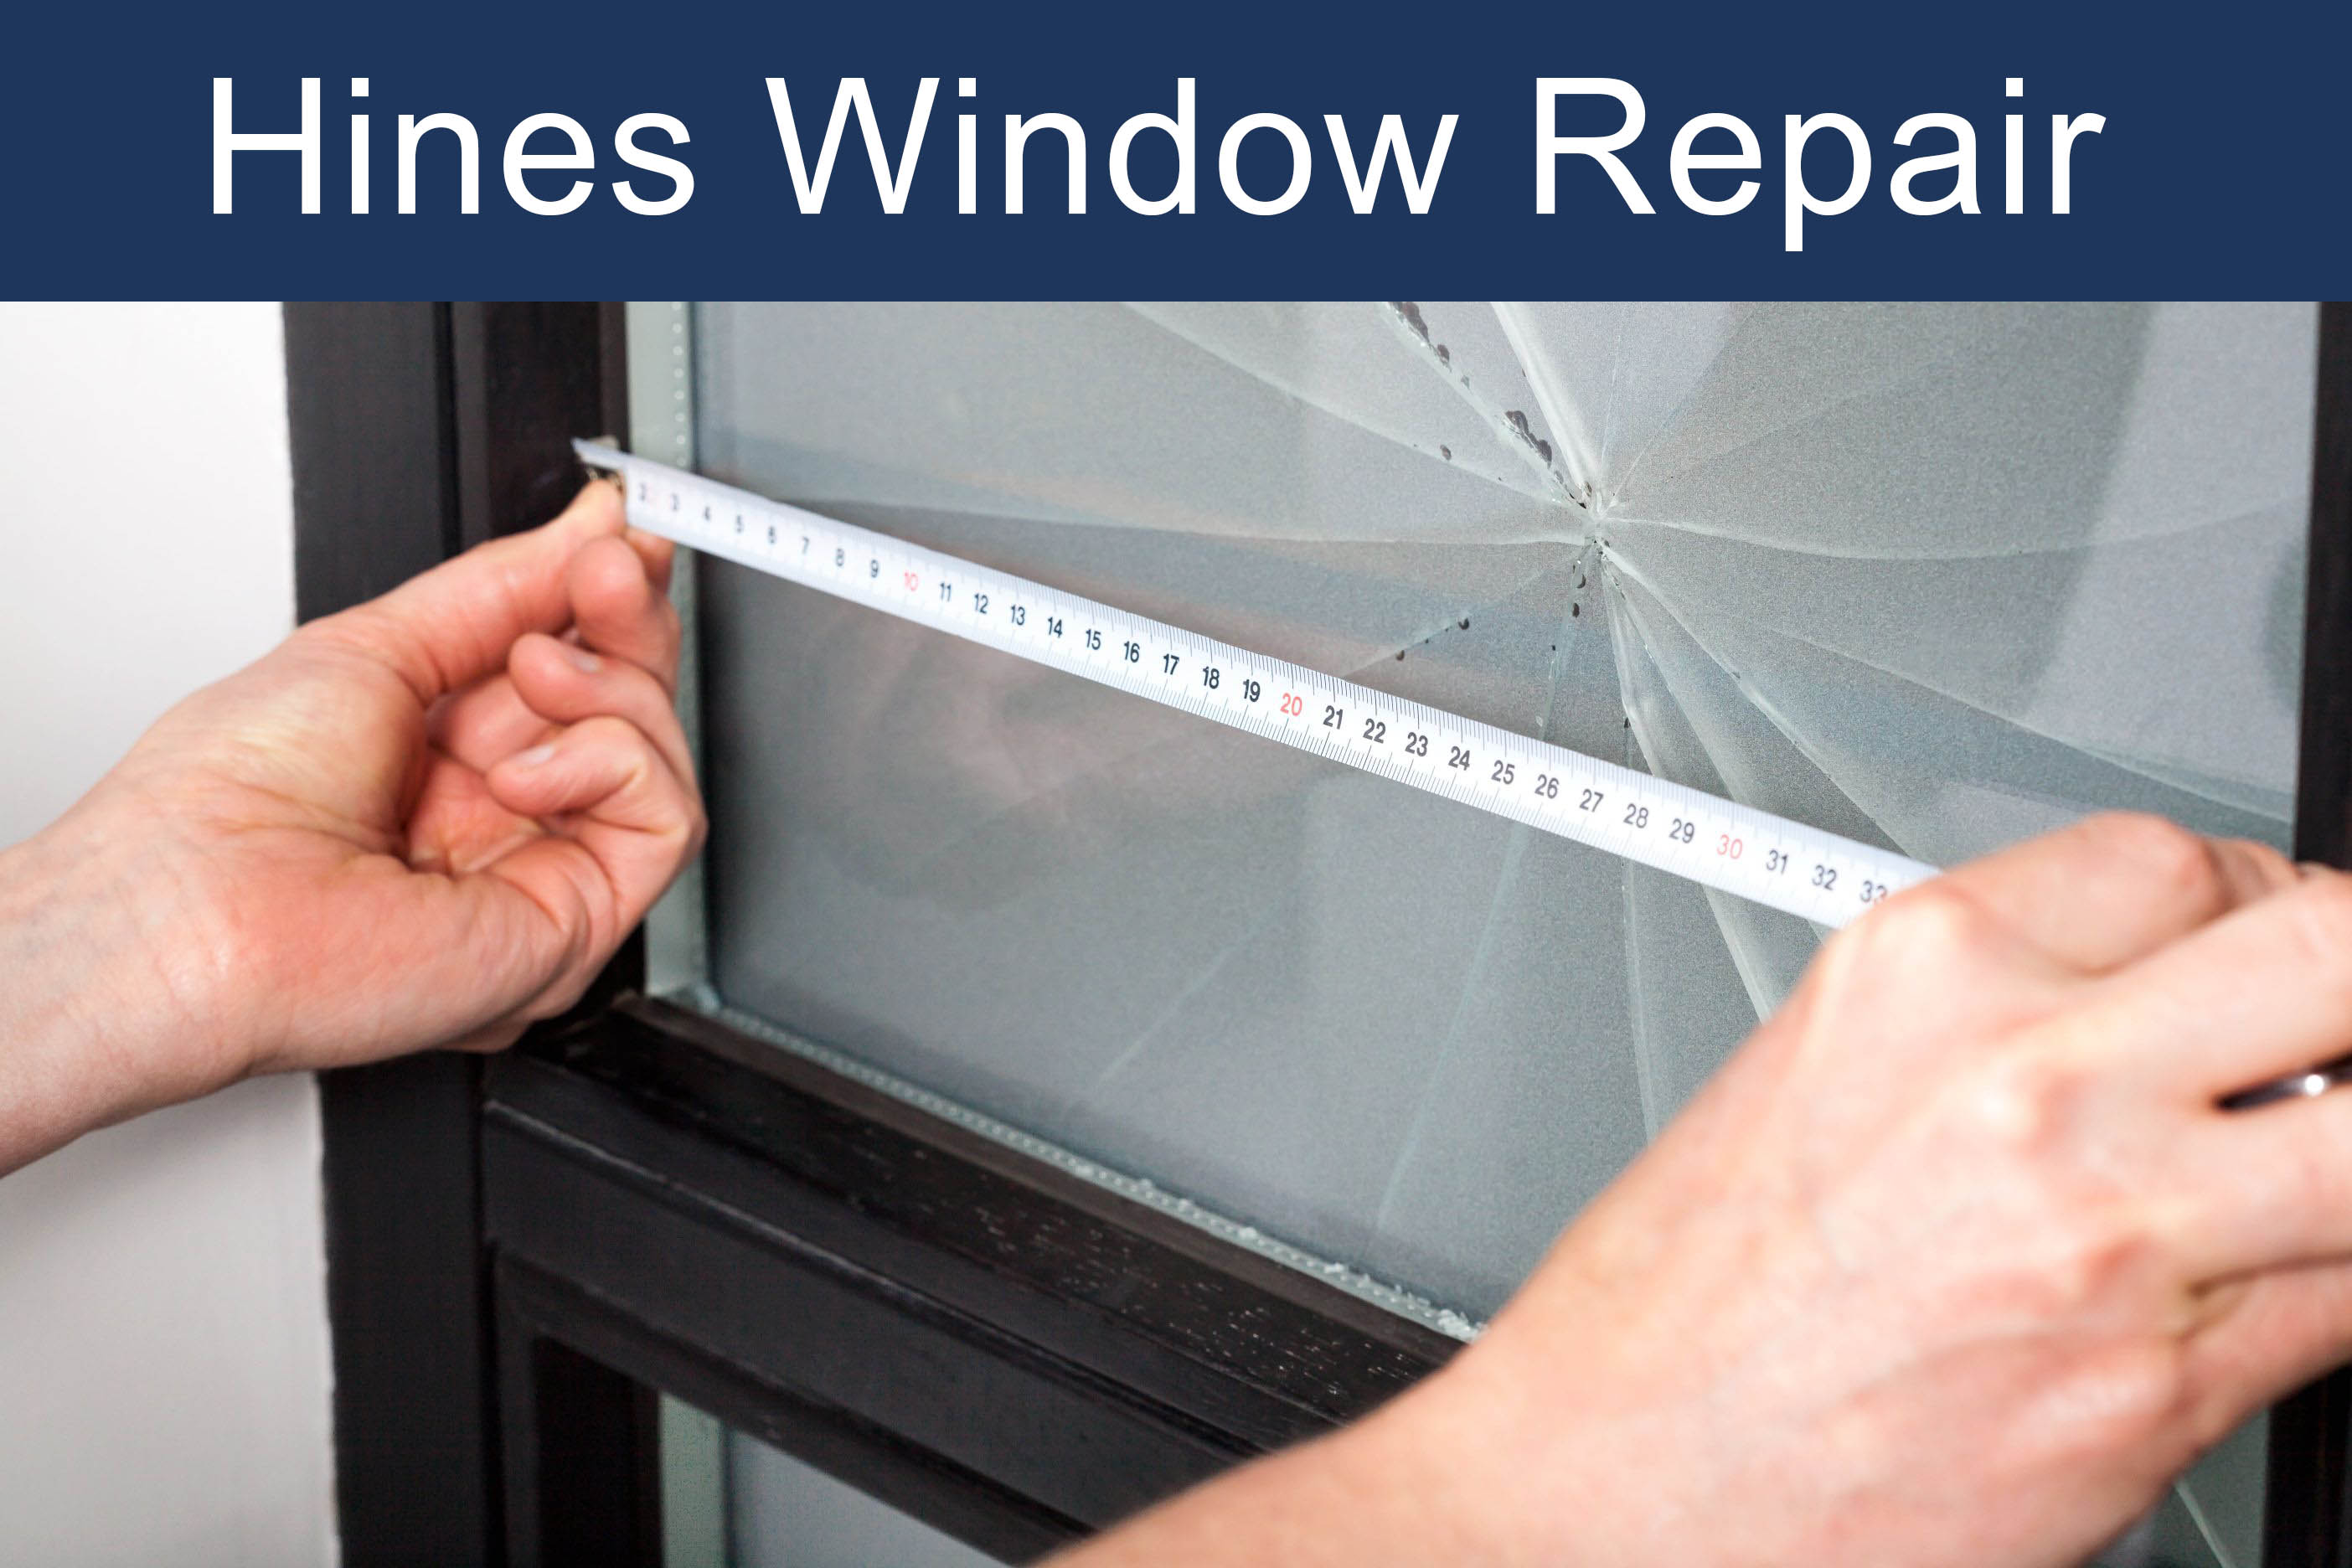 hines window repair